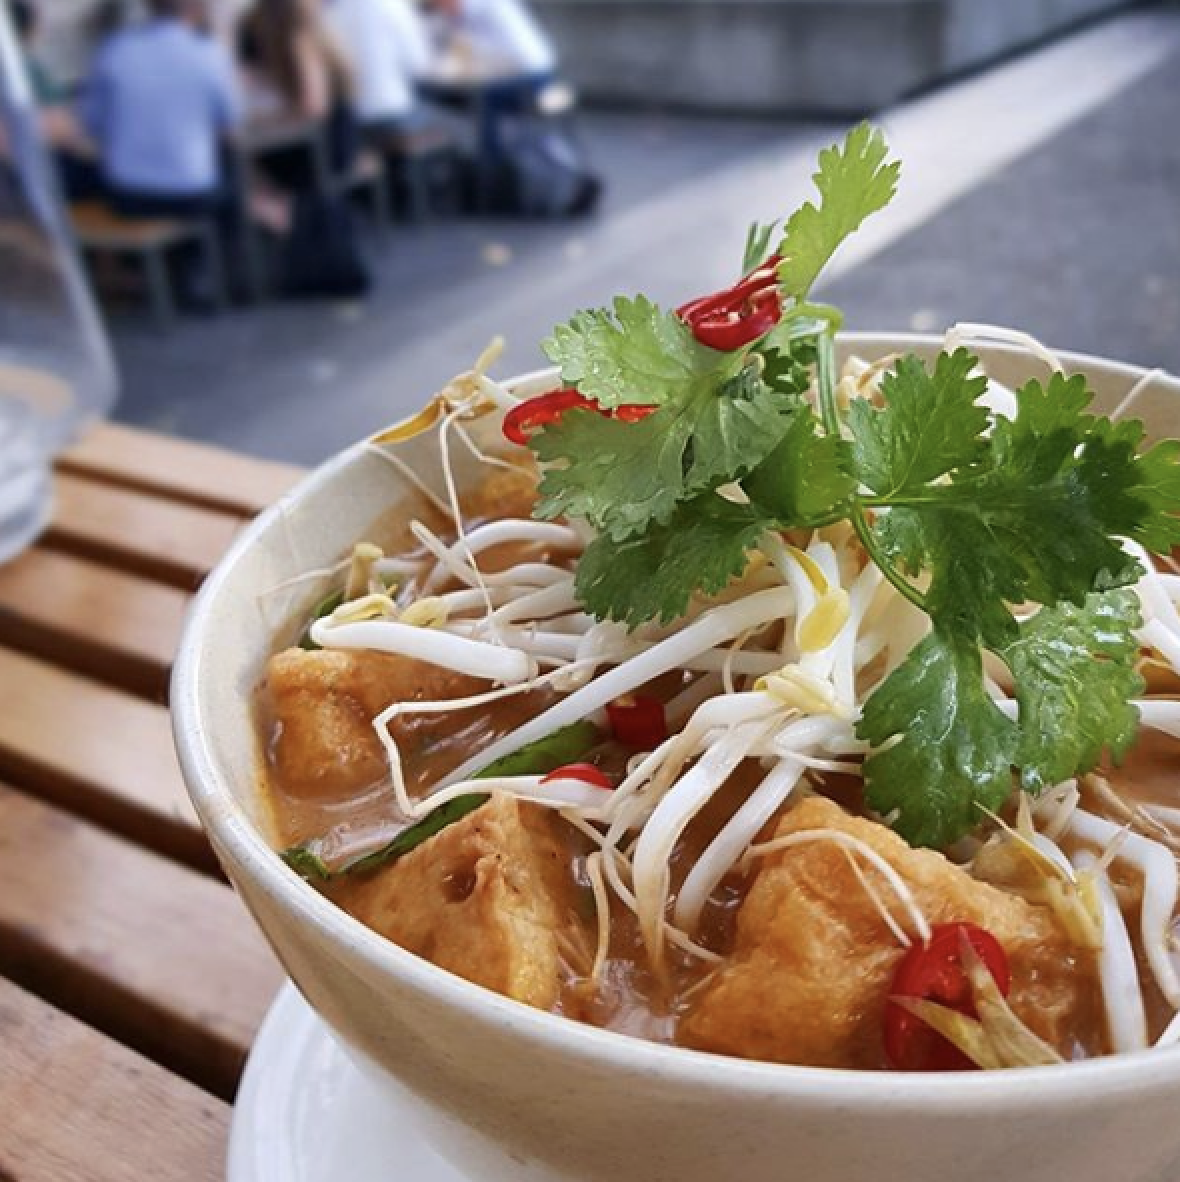 In the soup  @messy.veggies heroing our delicious vegan laksa. What a gorgeous shot.